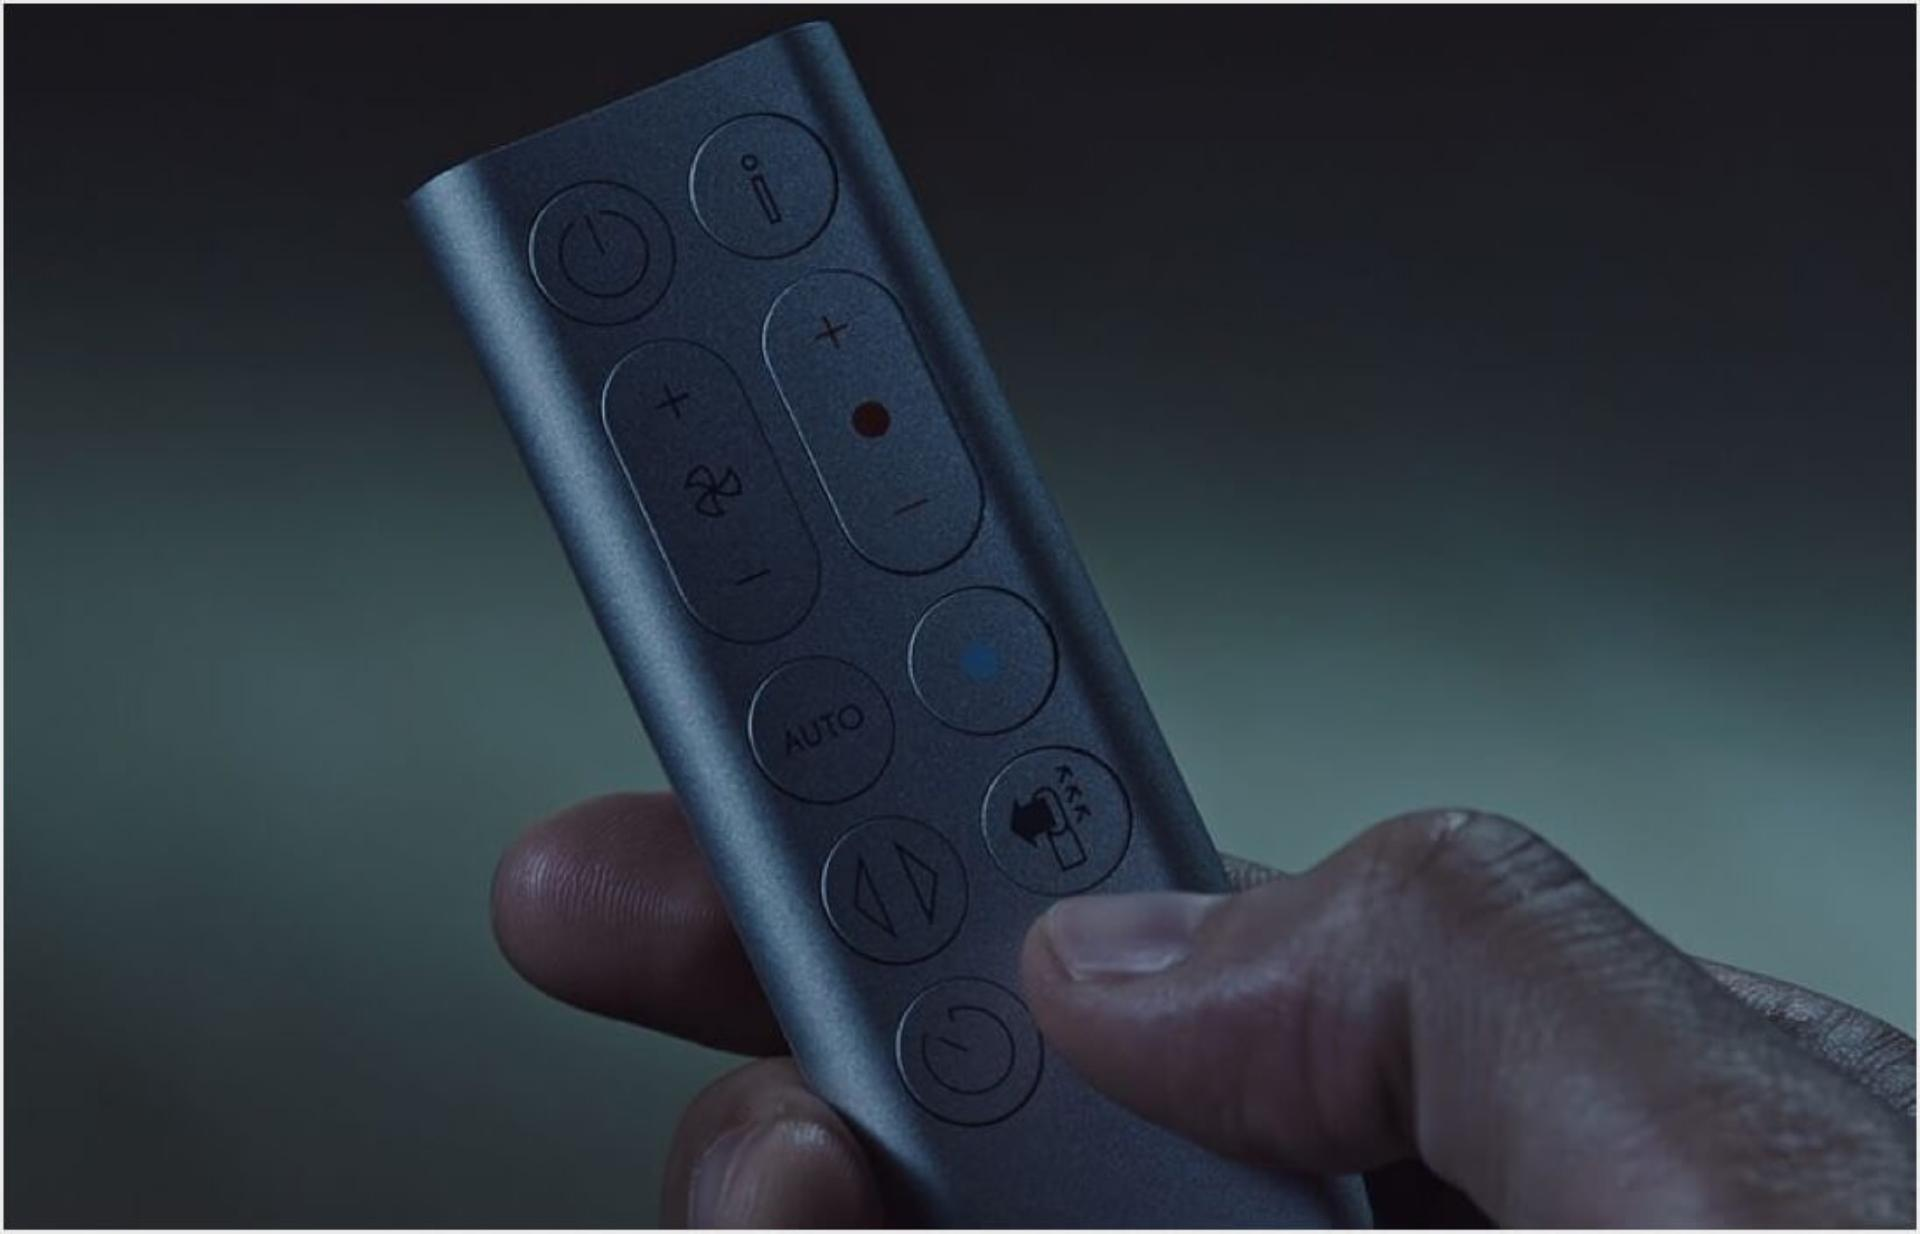 Person setting the Sleep timer using the remote control